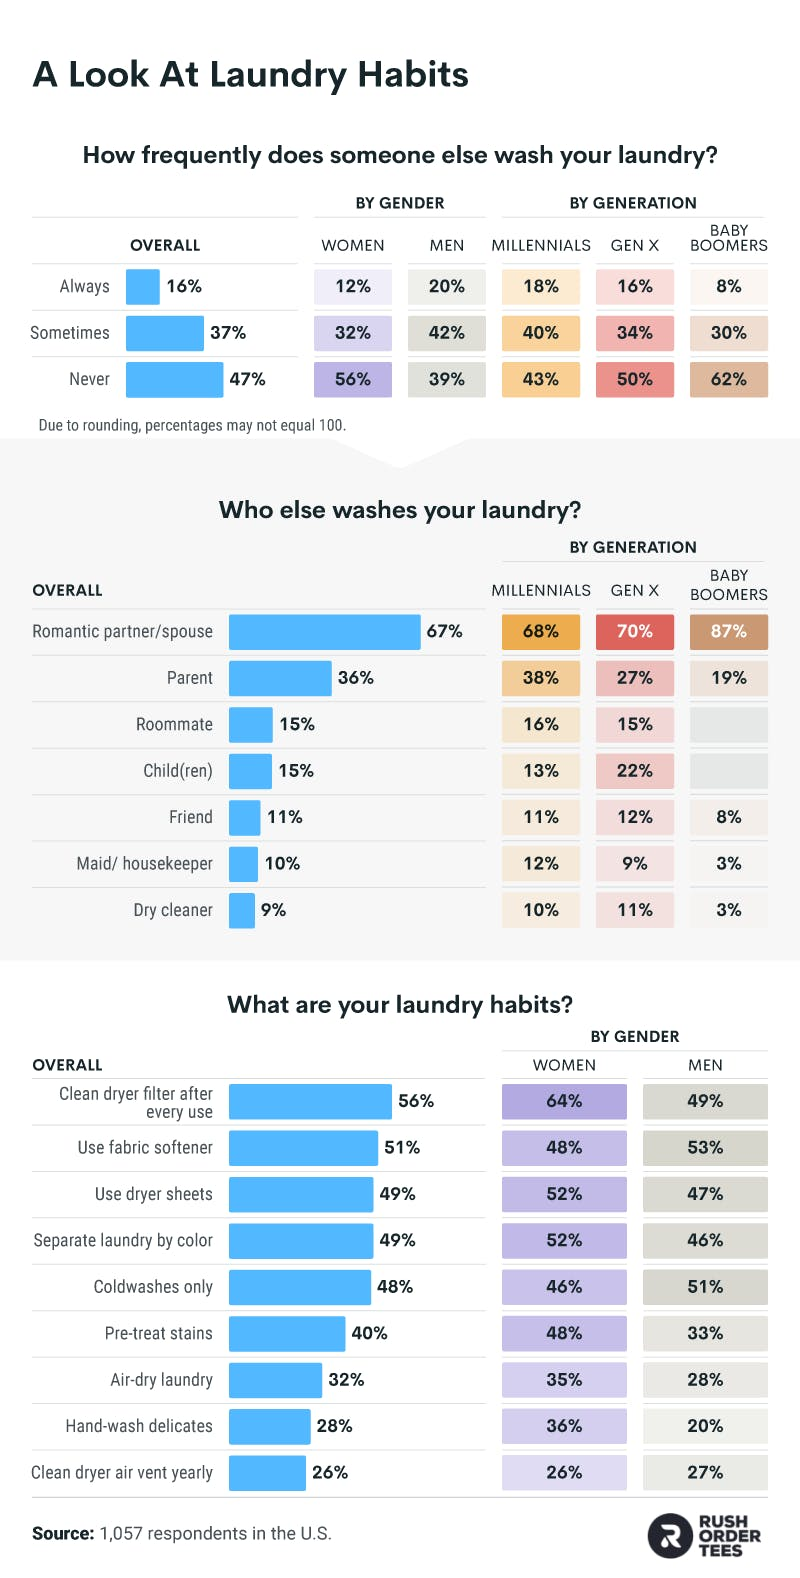 The most common laundry habits by gender and generation.